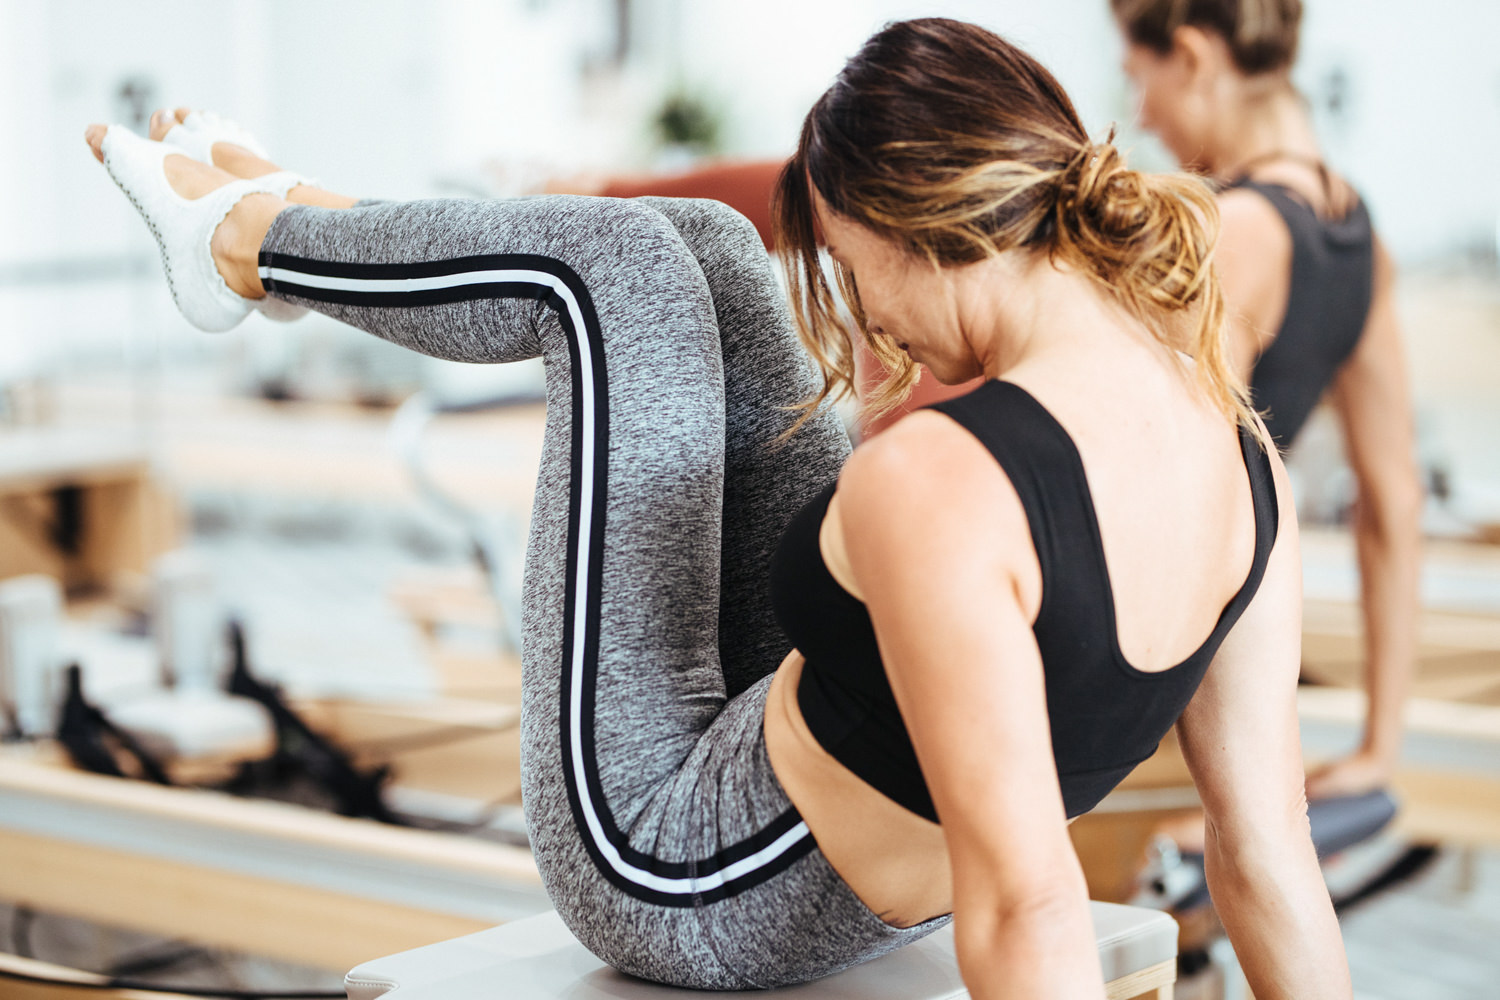 Align - For those who love Pilates.